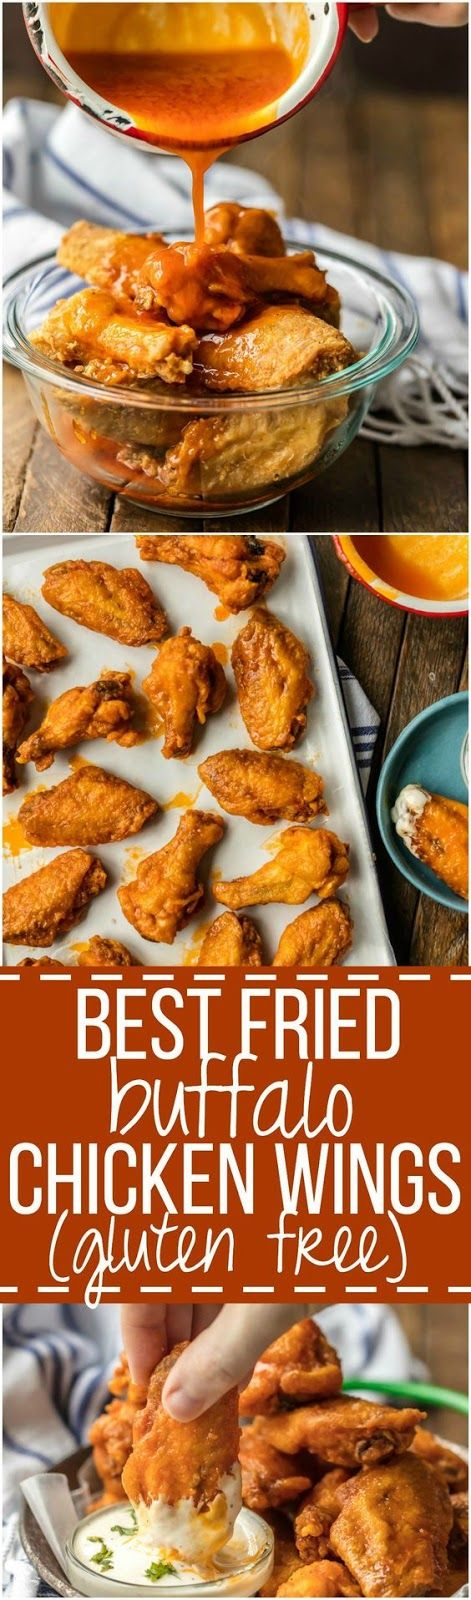 Ingredients 1 cup Bob's Red Mill Gluten Free Flour 1 tablespoon paprika 1 teaspoon cayenne pepper (less if you don't love spicy...